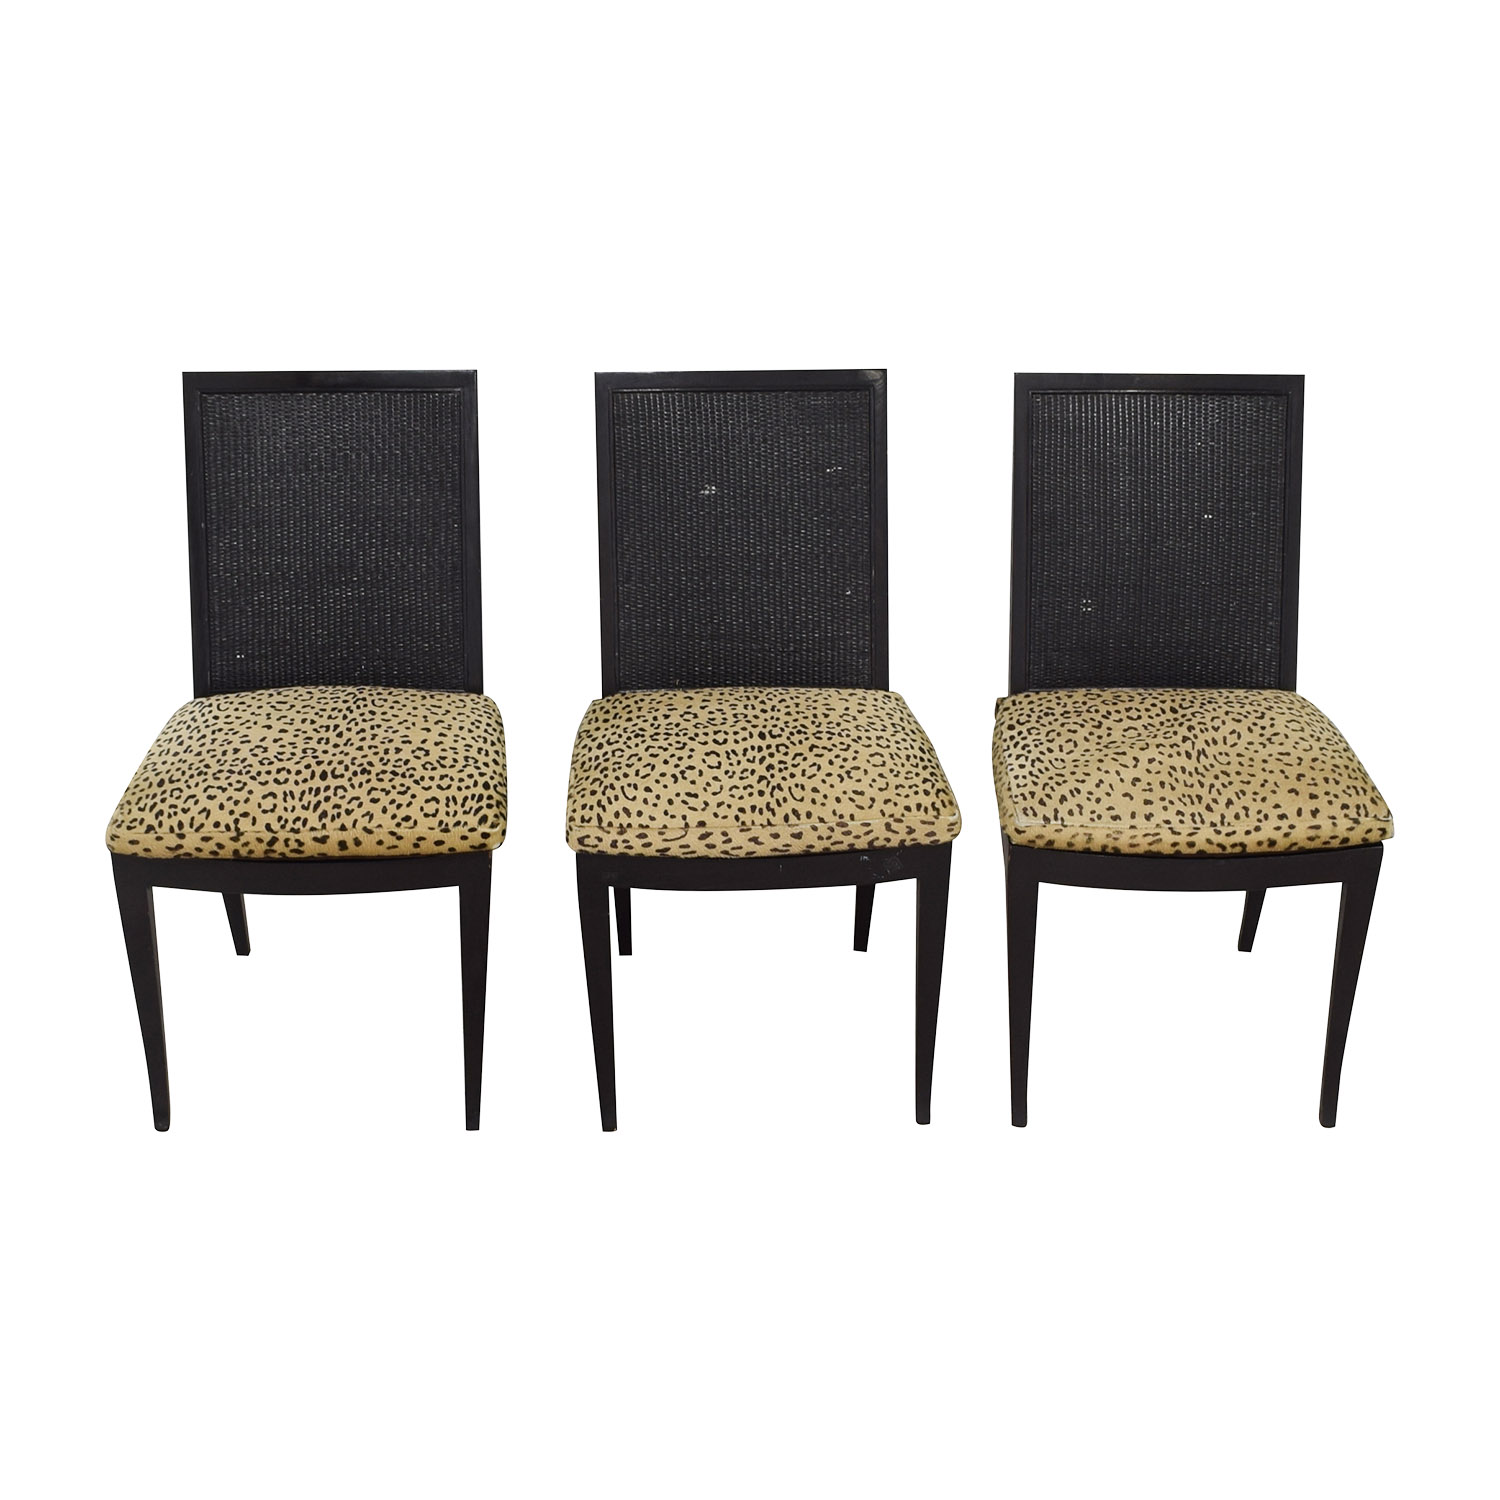 accent chairs under 50 dollars academy sports lounge 90 off sutherland